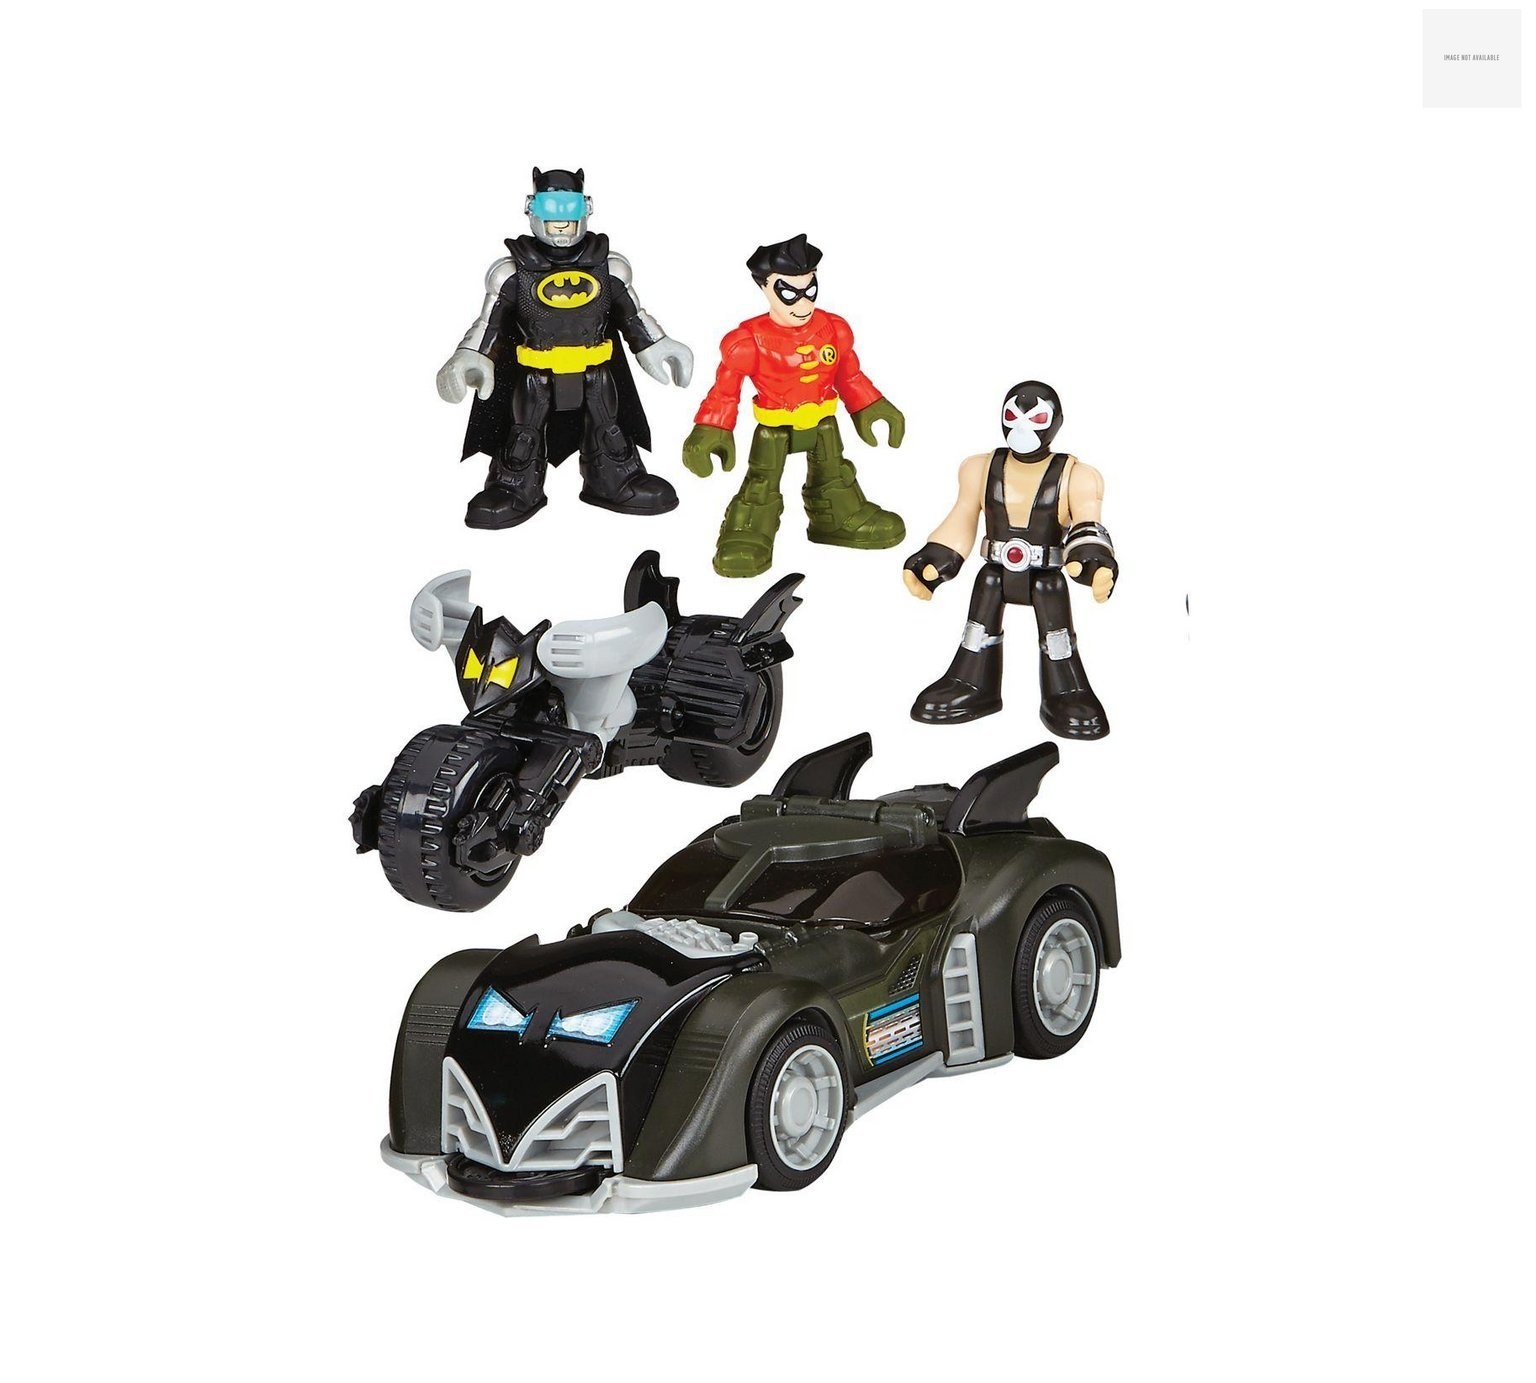 Imaginext Batmobile DC Super Friends Set